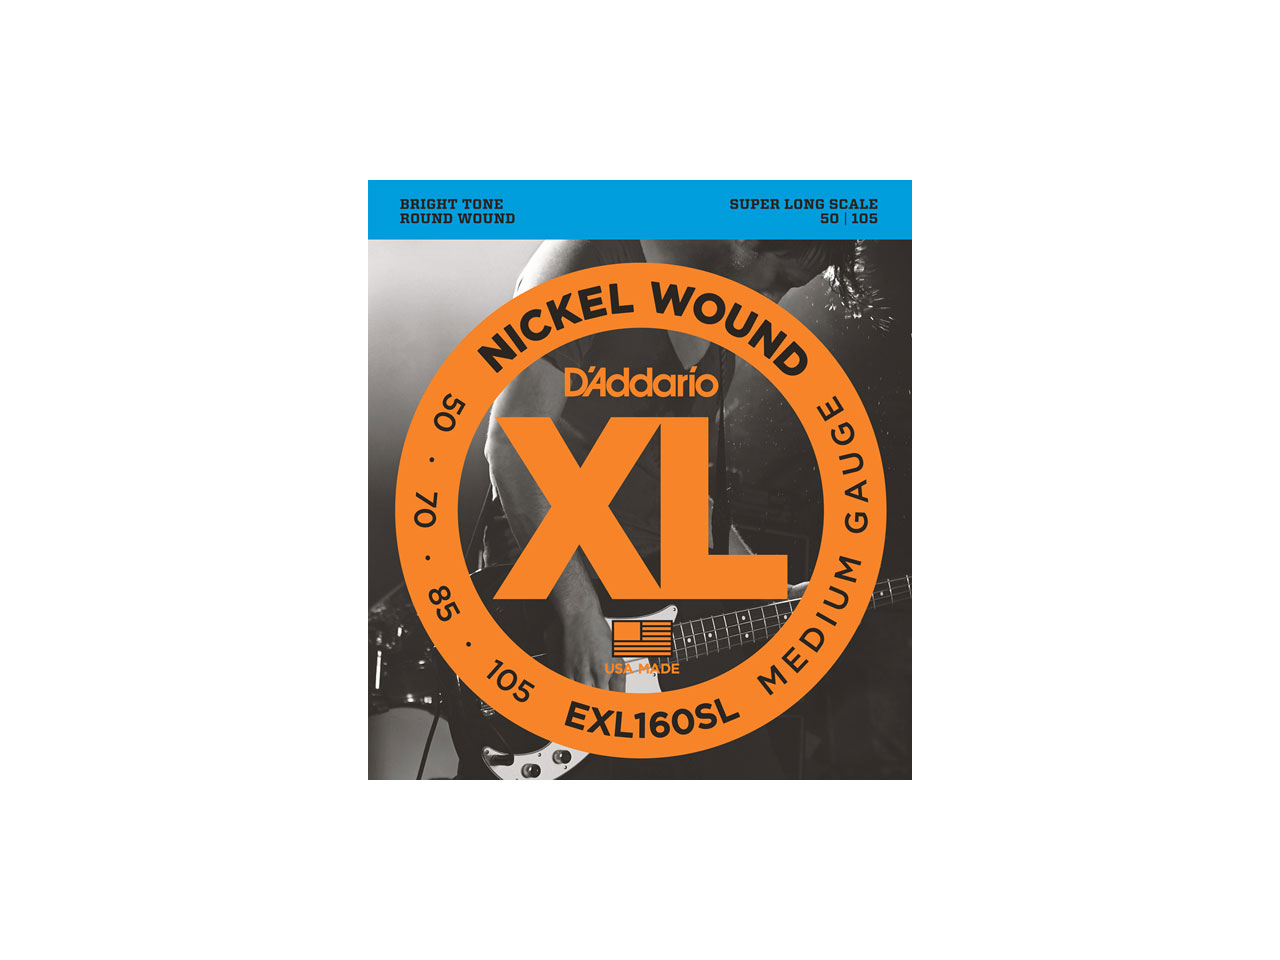 D'Addario(ダダリオ) XL Nickel Round Wound , Super Long Scale , Medium / EXL160SL (エレキベース弦)